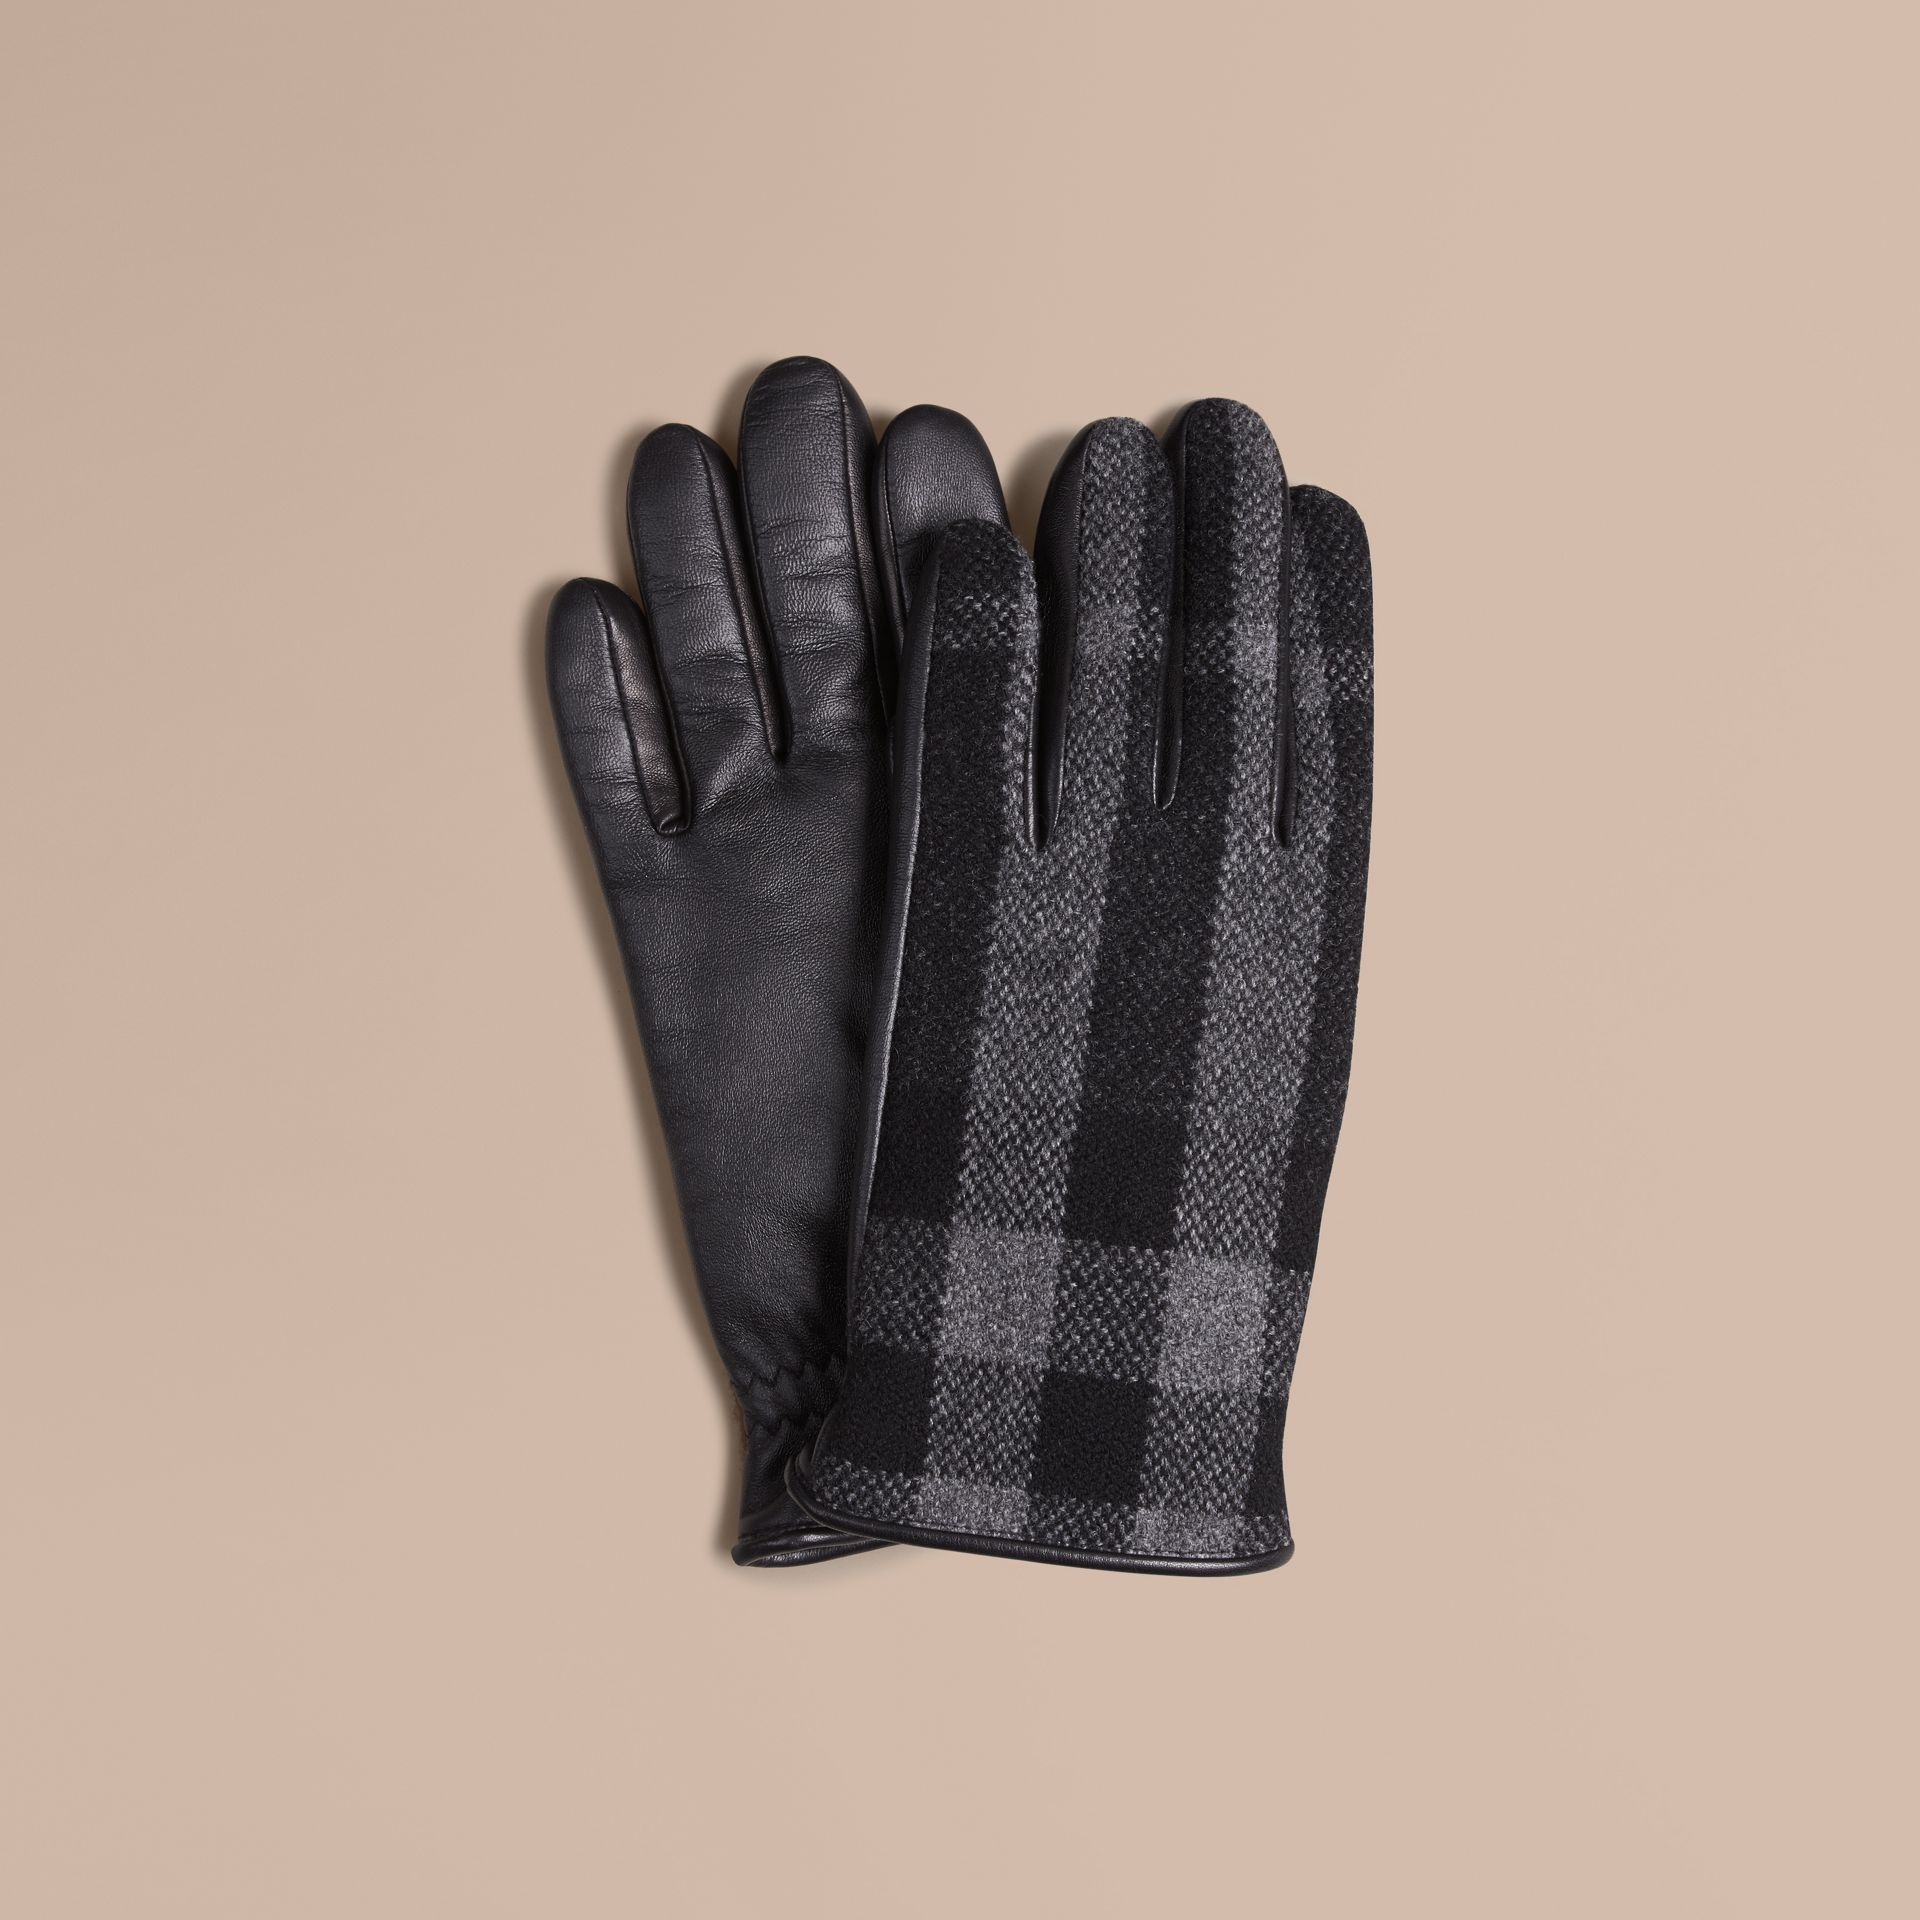 Charcoal Check Wool and Leather Touch Screen Gloves Charcoal - gallery image 1